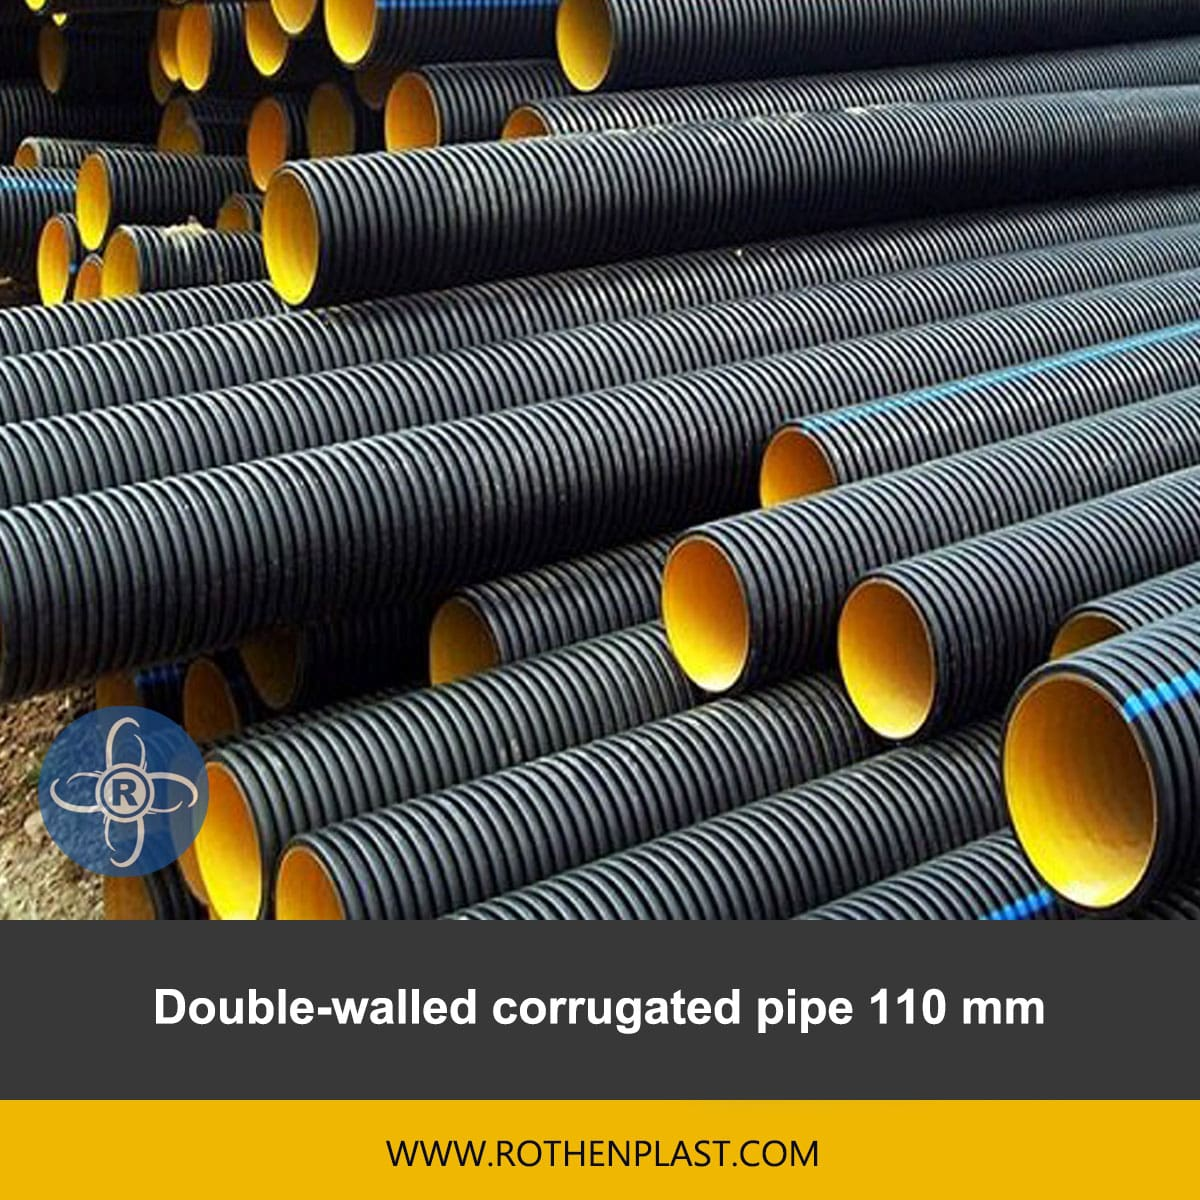 Double walled corrugated pipe 110 mm